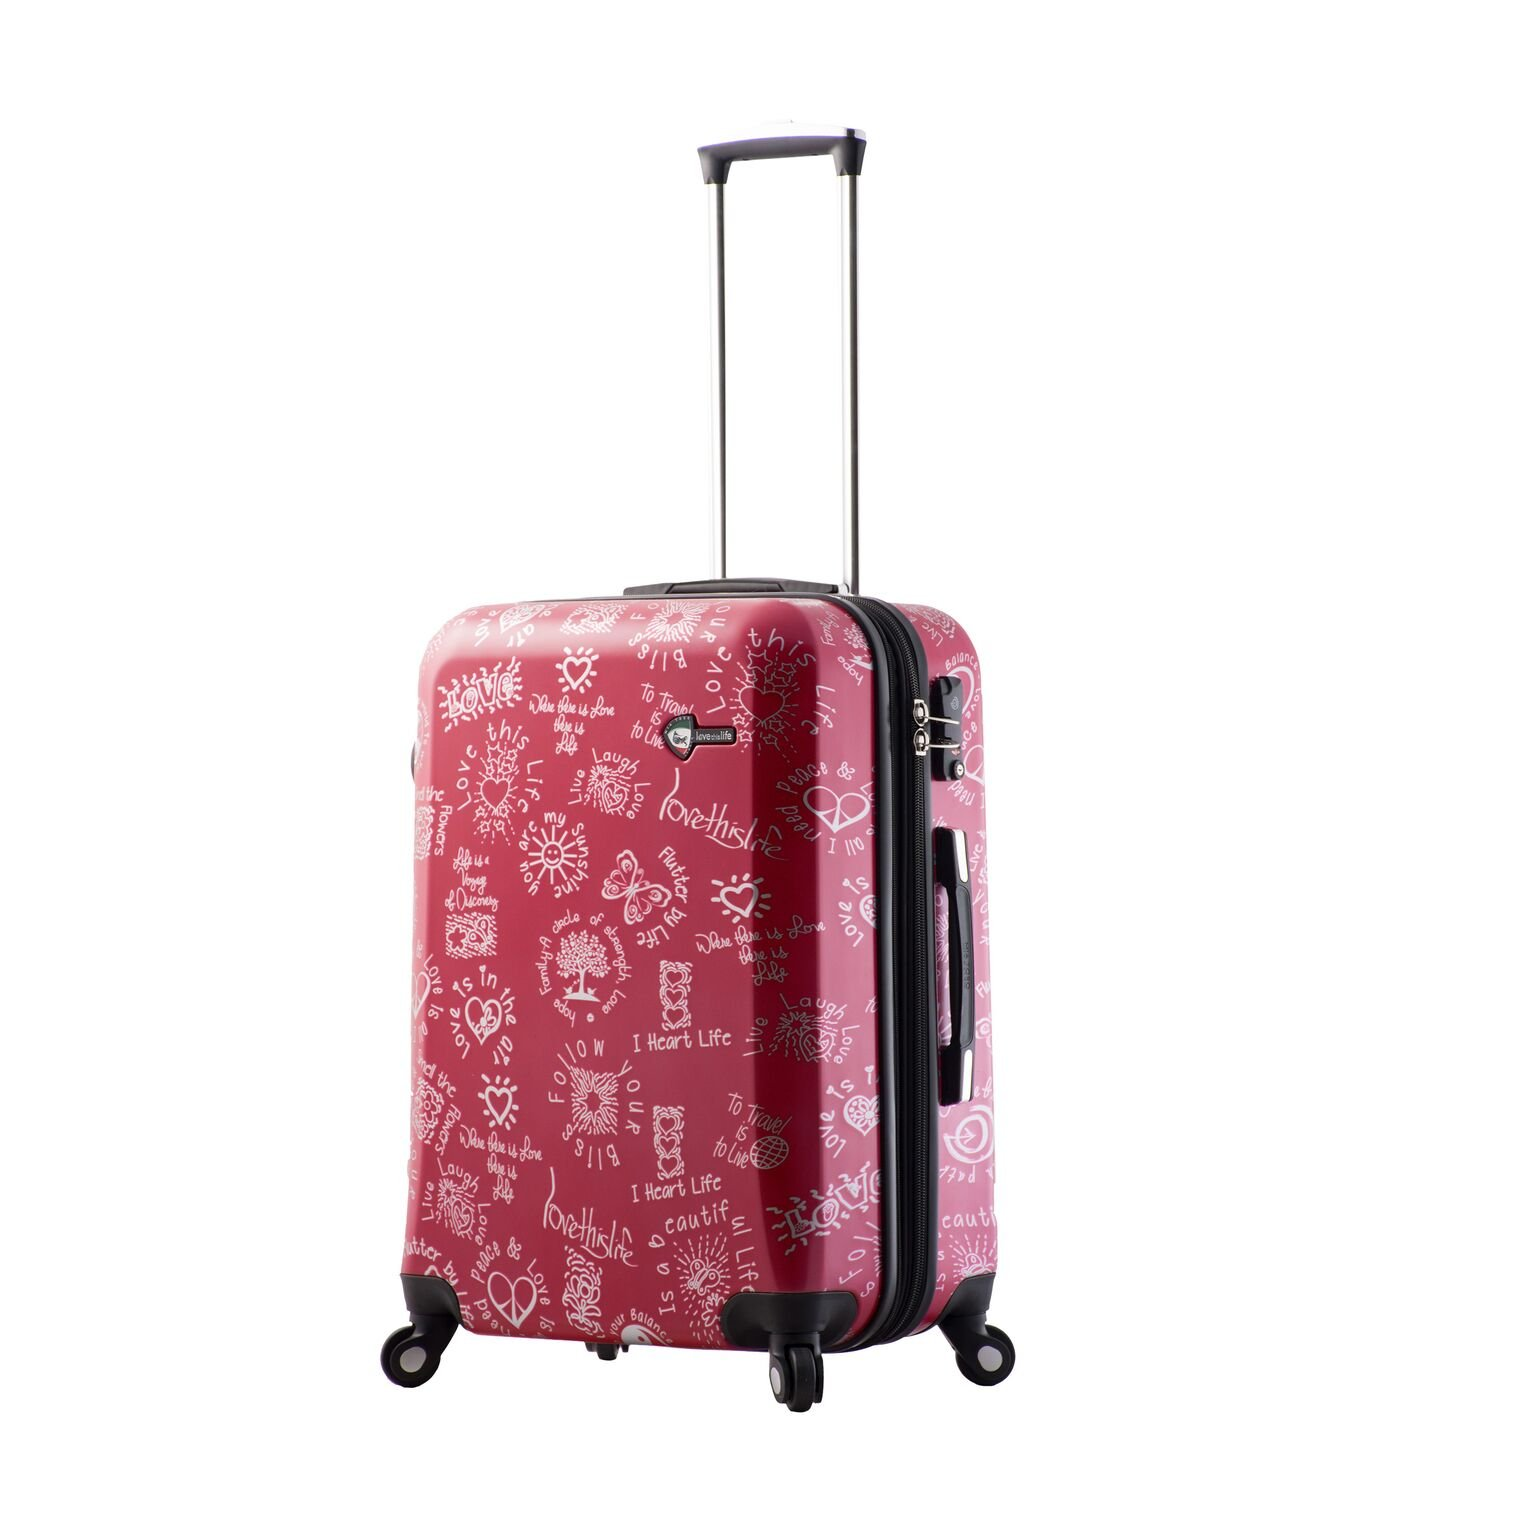 Mia Toro M1089-24in-Red Love This Life-Medallions Hardside 24 Inch Spinner, Red